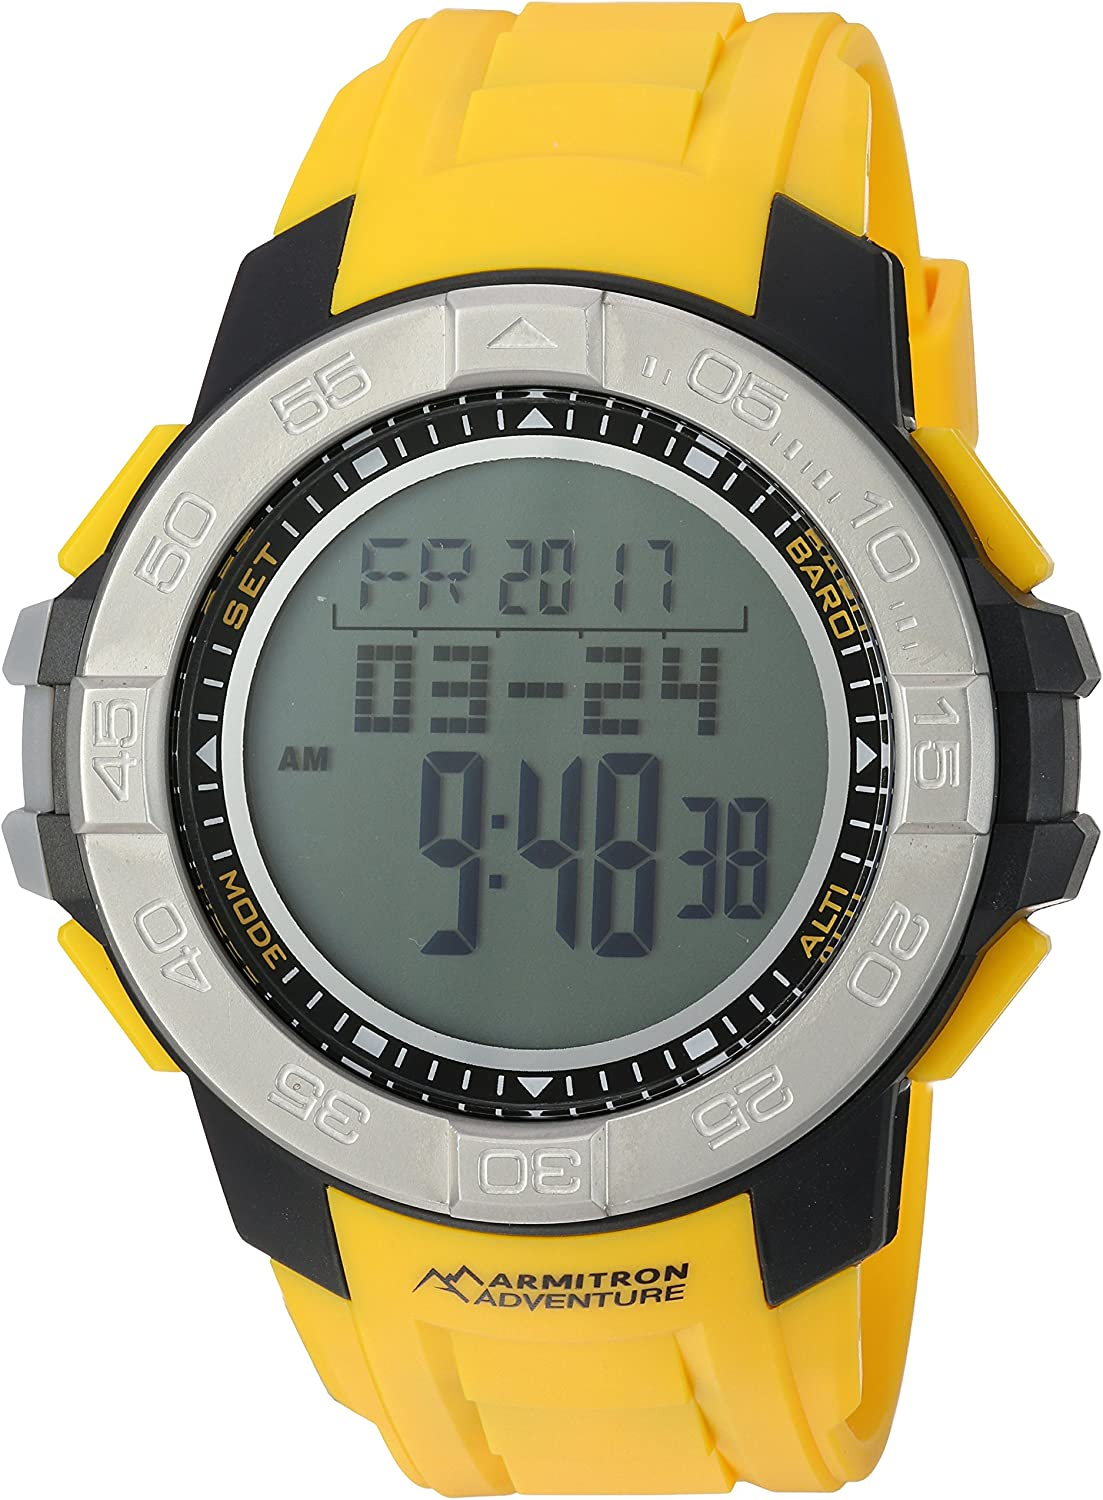 Armitron Adventure Men s AD 1011YLW Digital Multi-Function Yellow Resin Strap Sport Watch